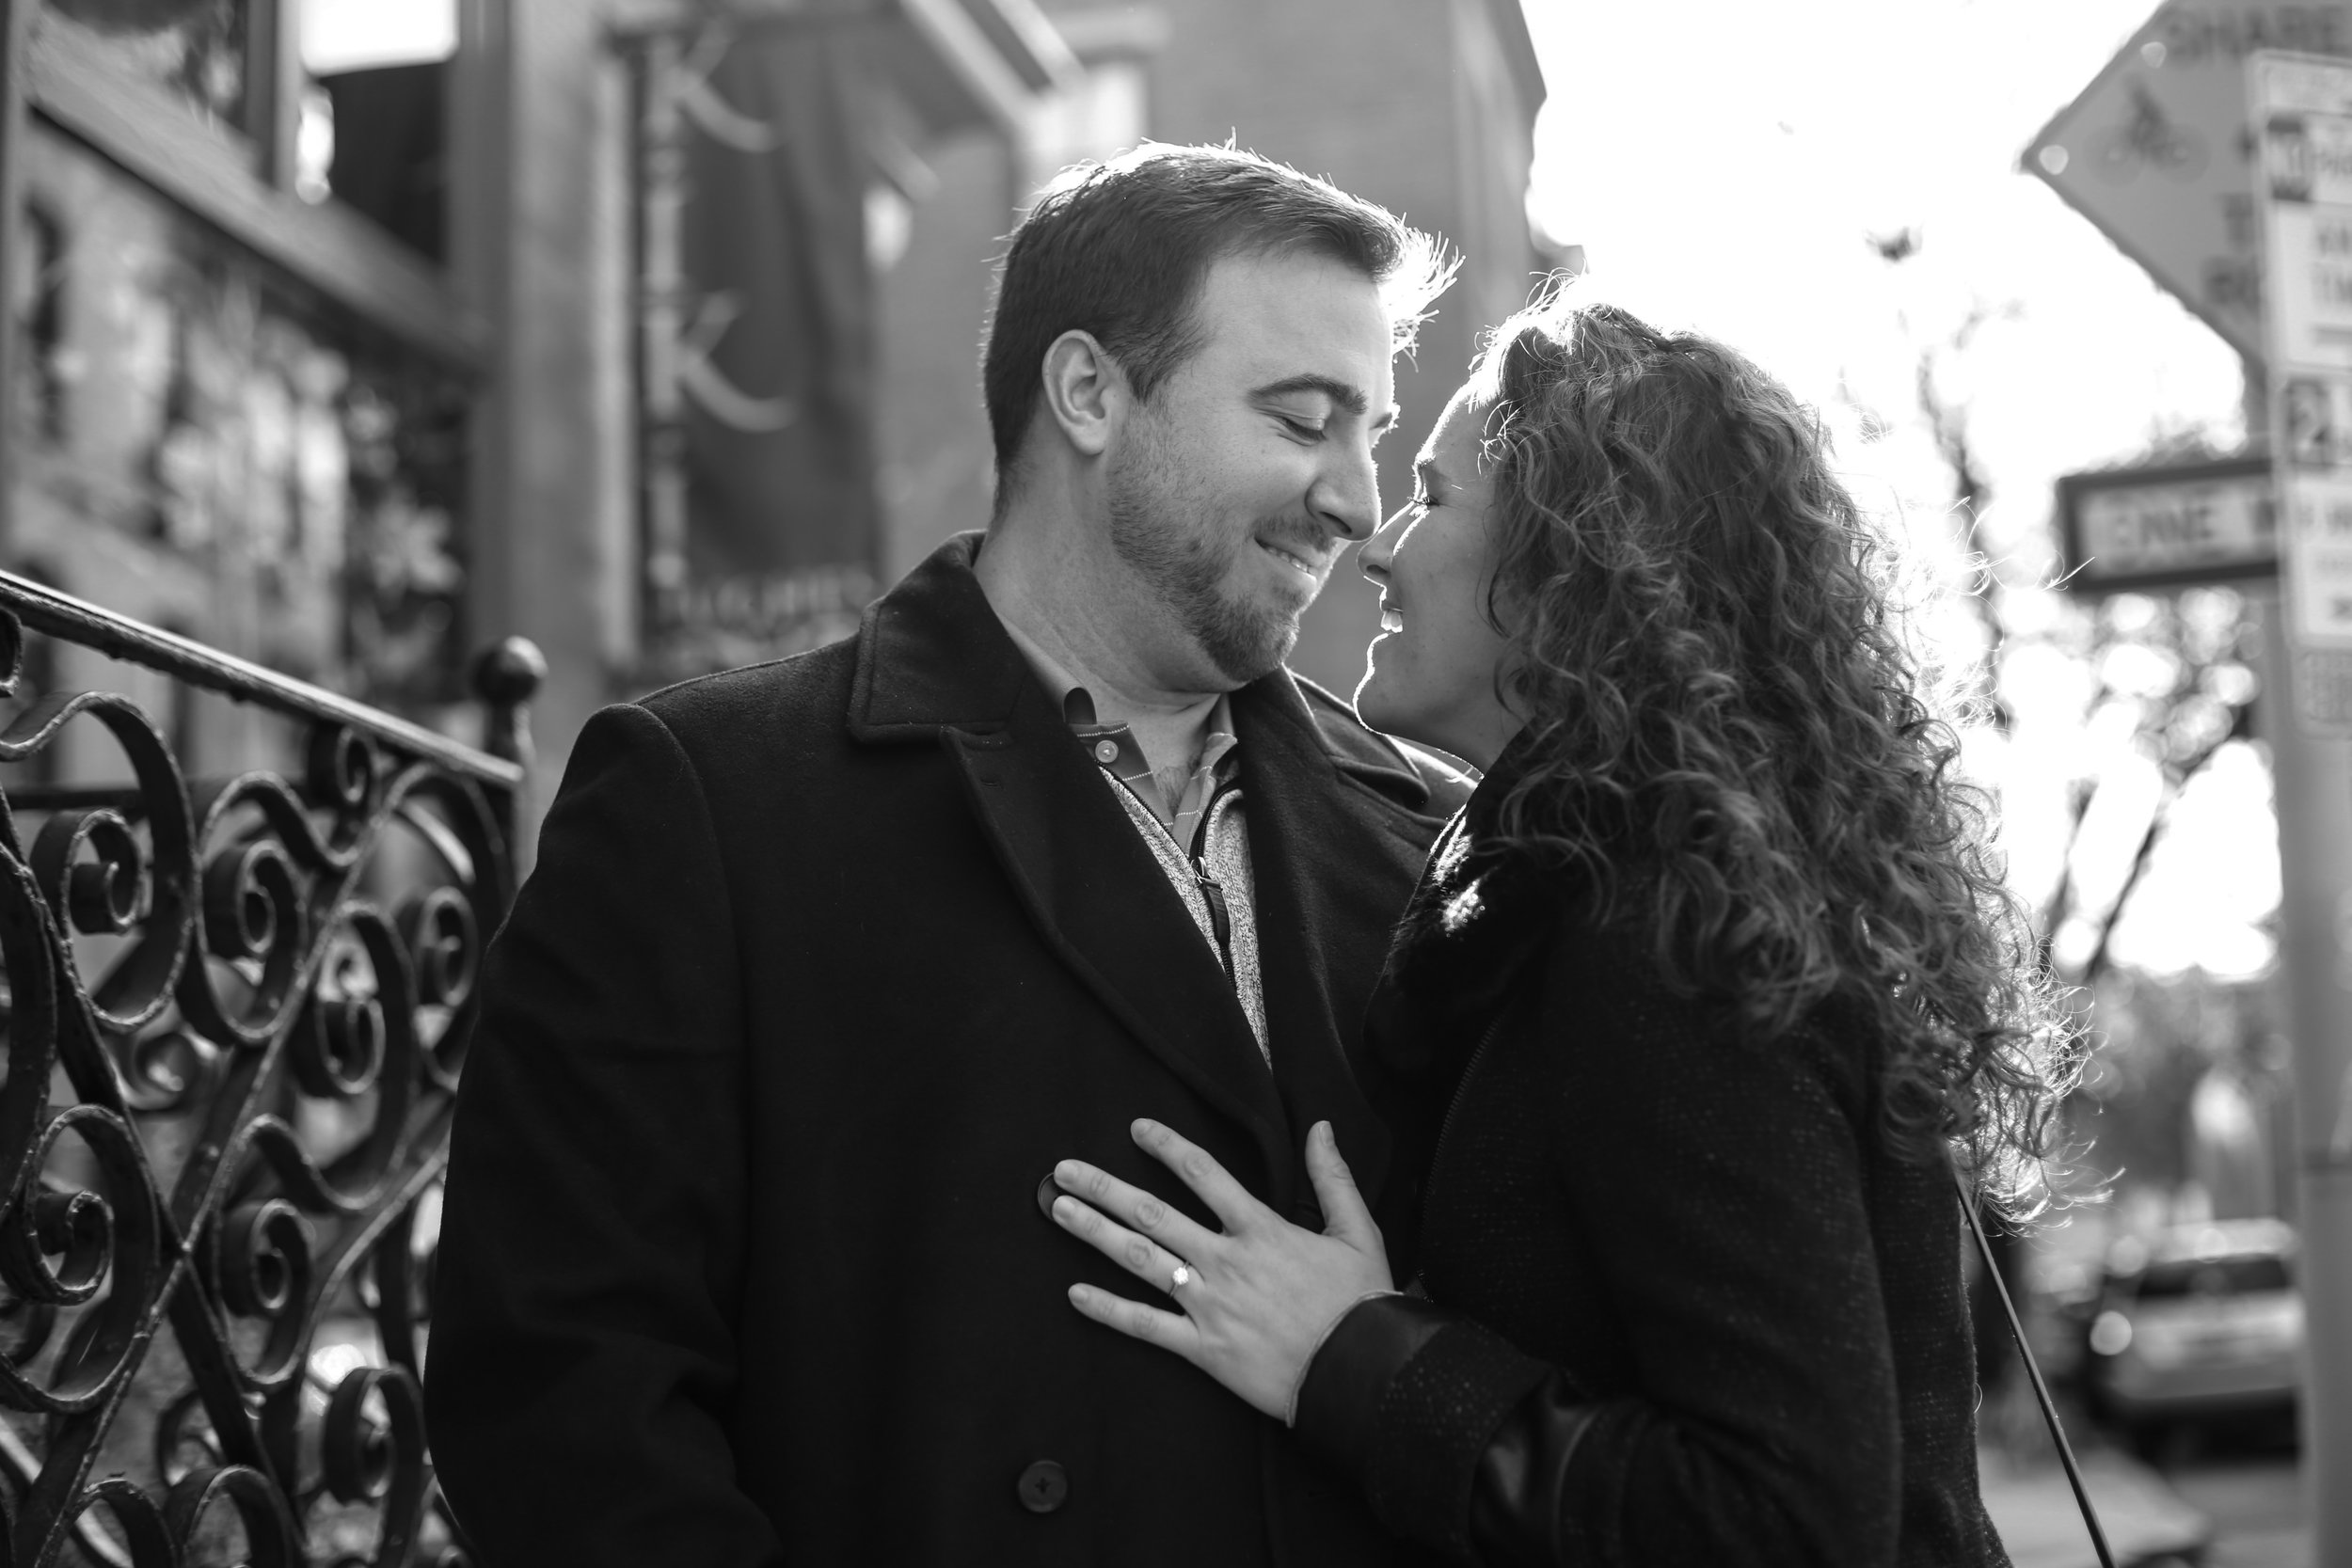 Philadelphia suprise proposal  Inna Ovsepian Photography